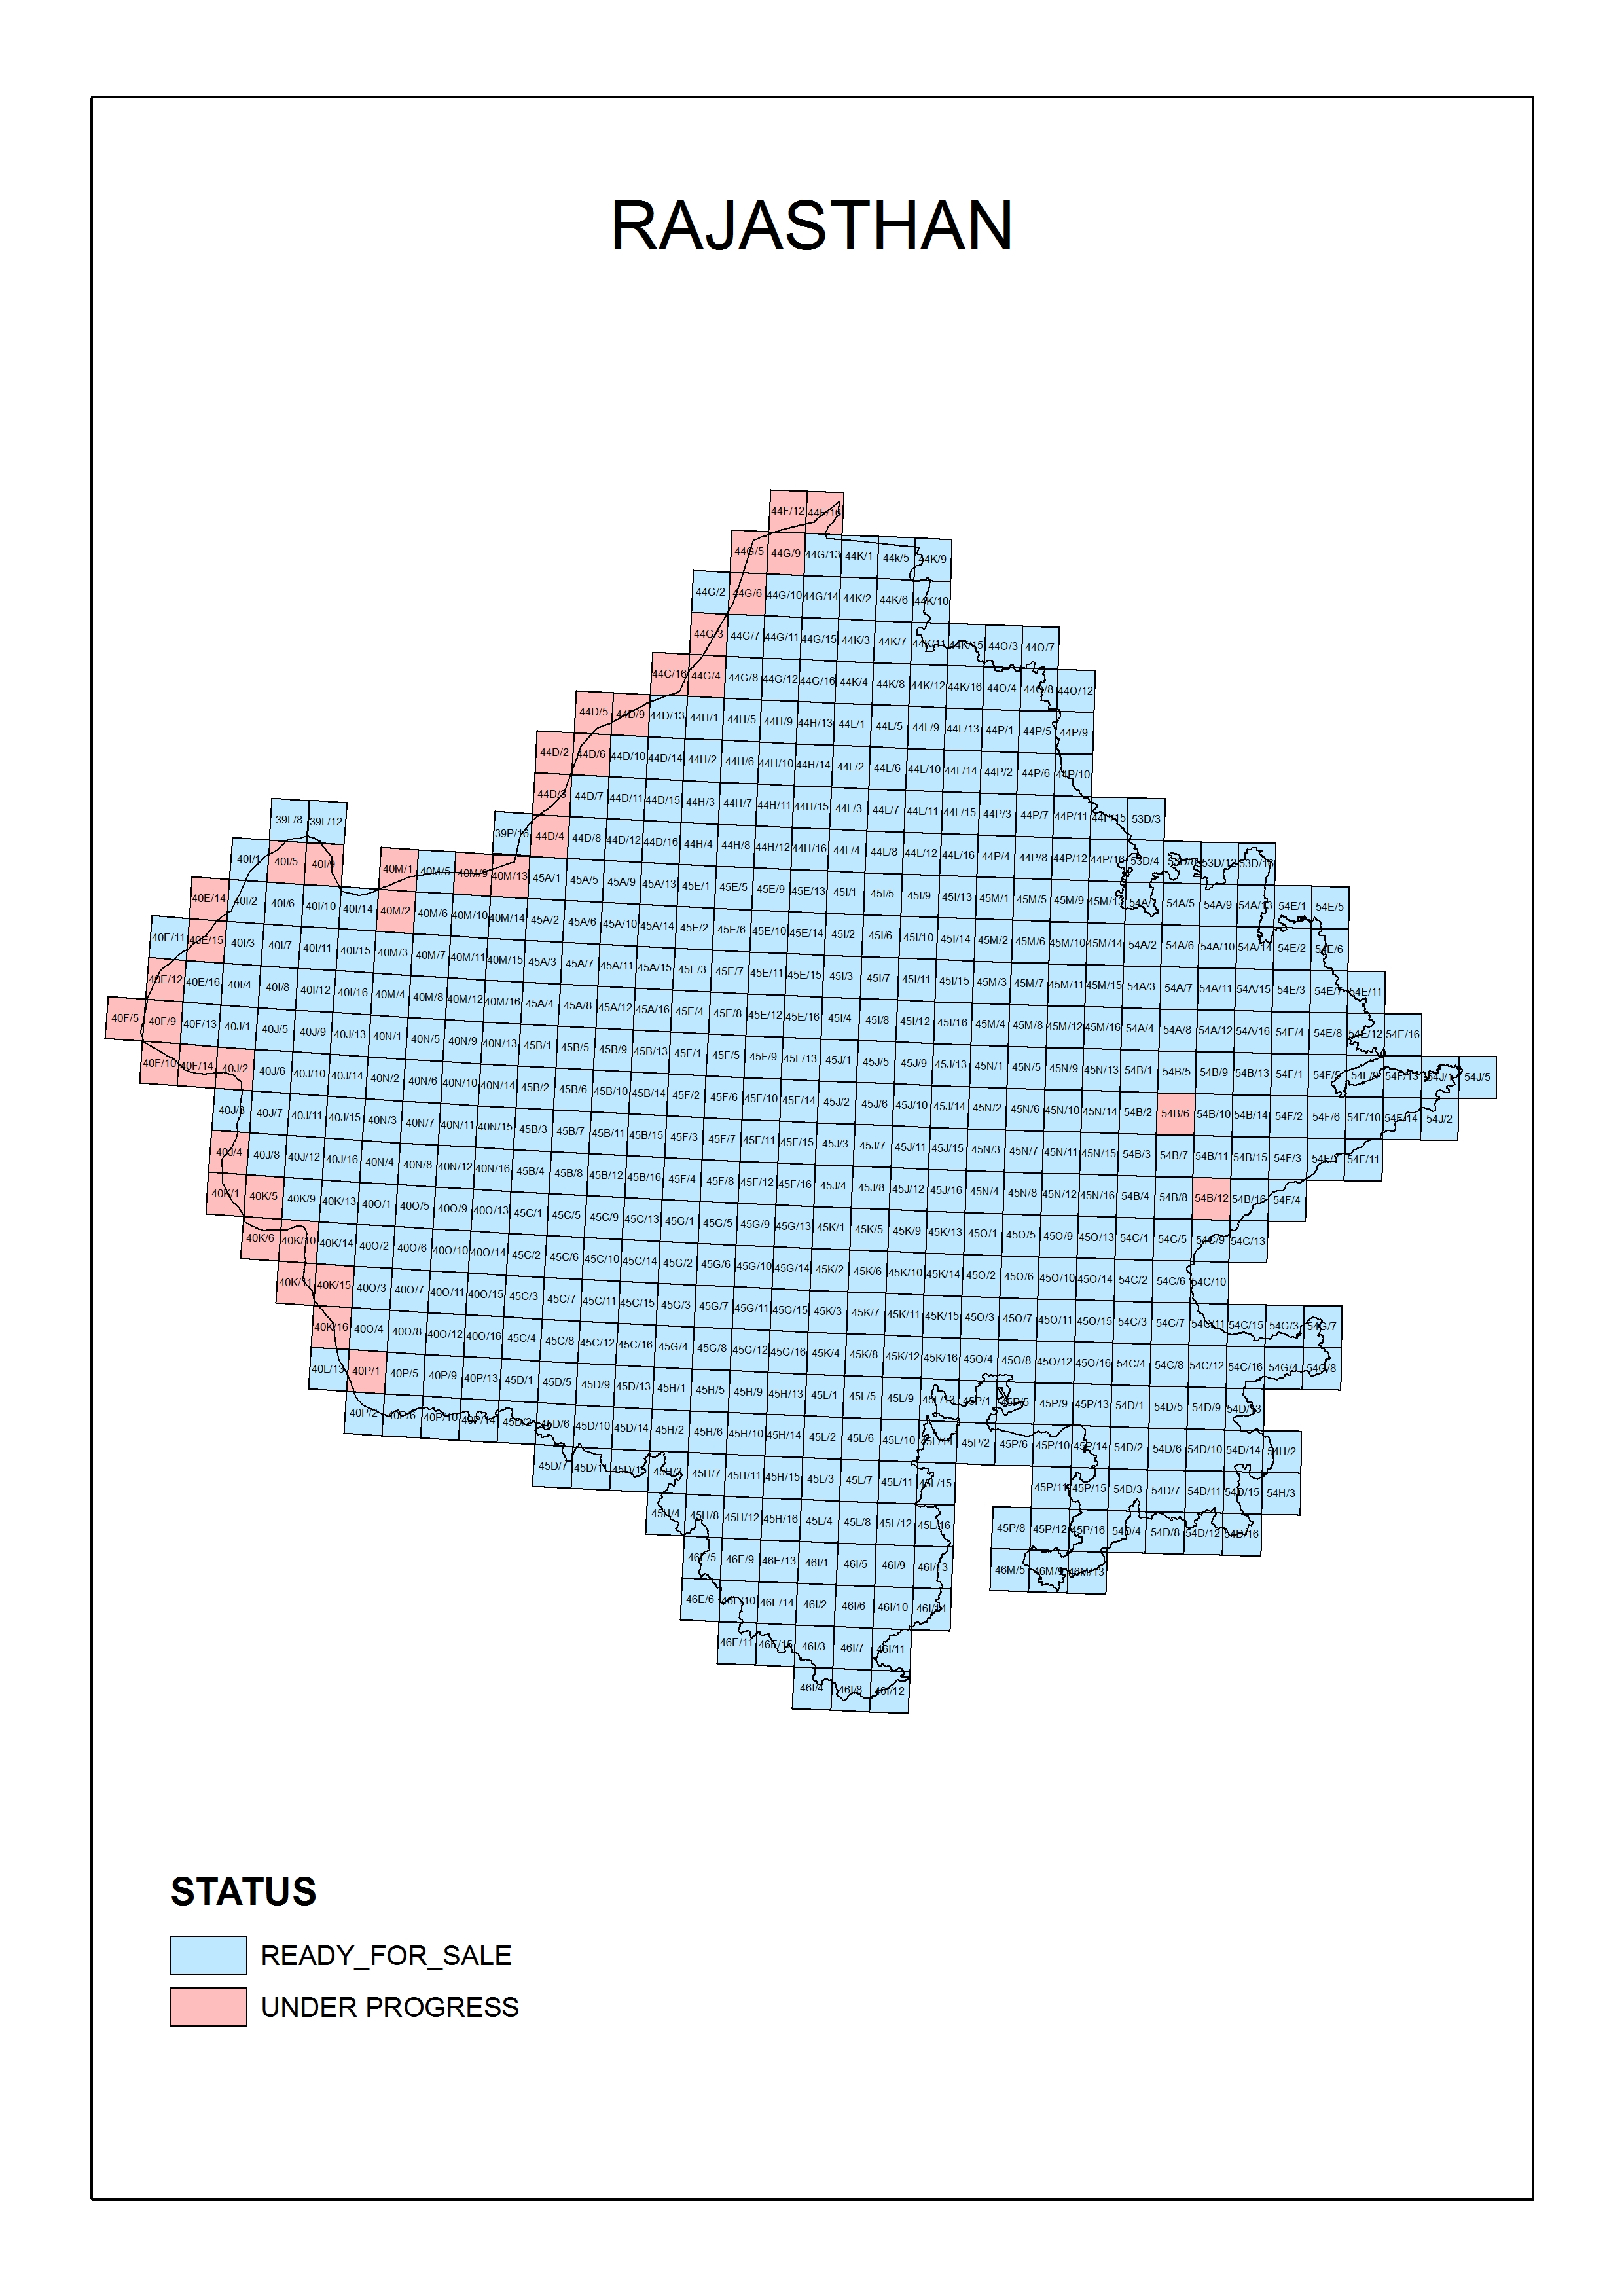 Open Series Maps(OSM): Survey of India on